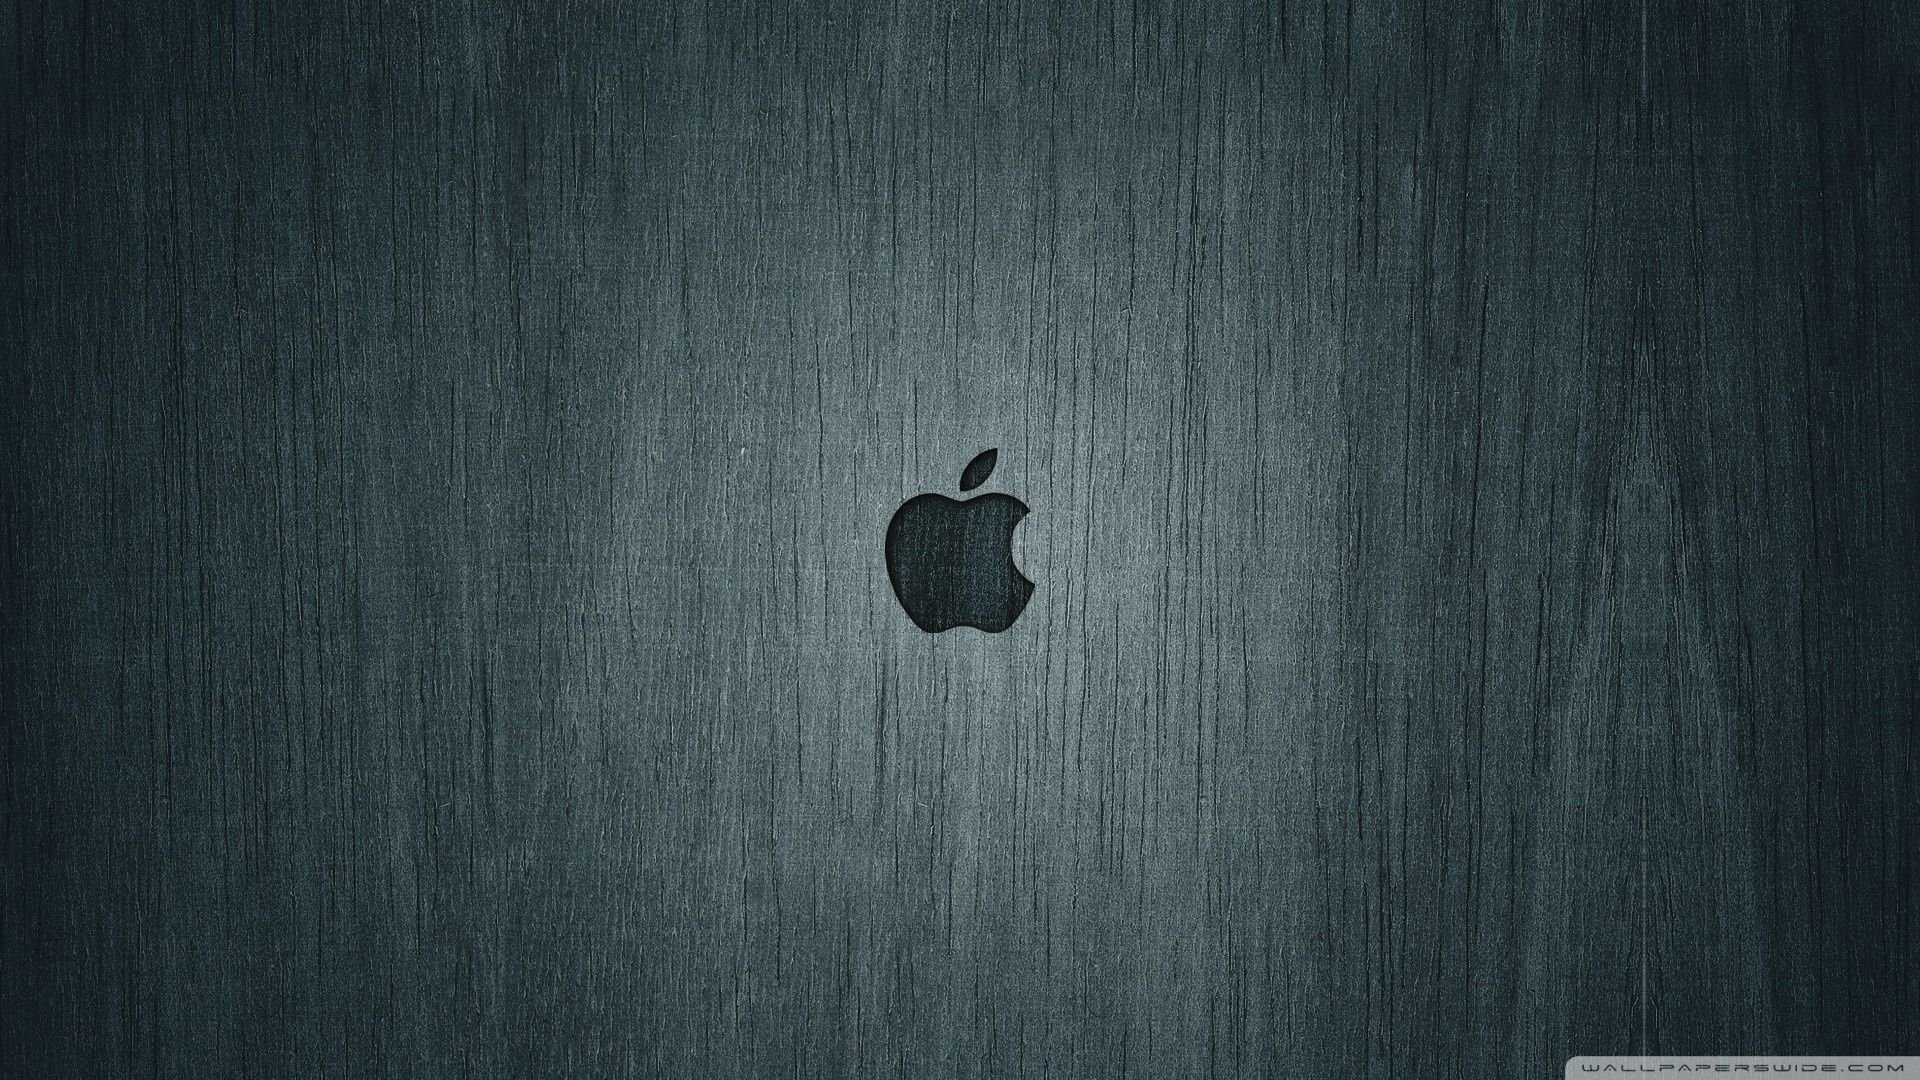 Apple Desktop Wallpapers Top Free Apple Desktop